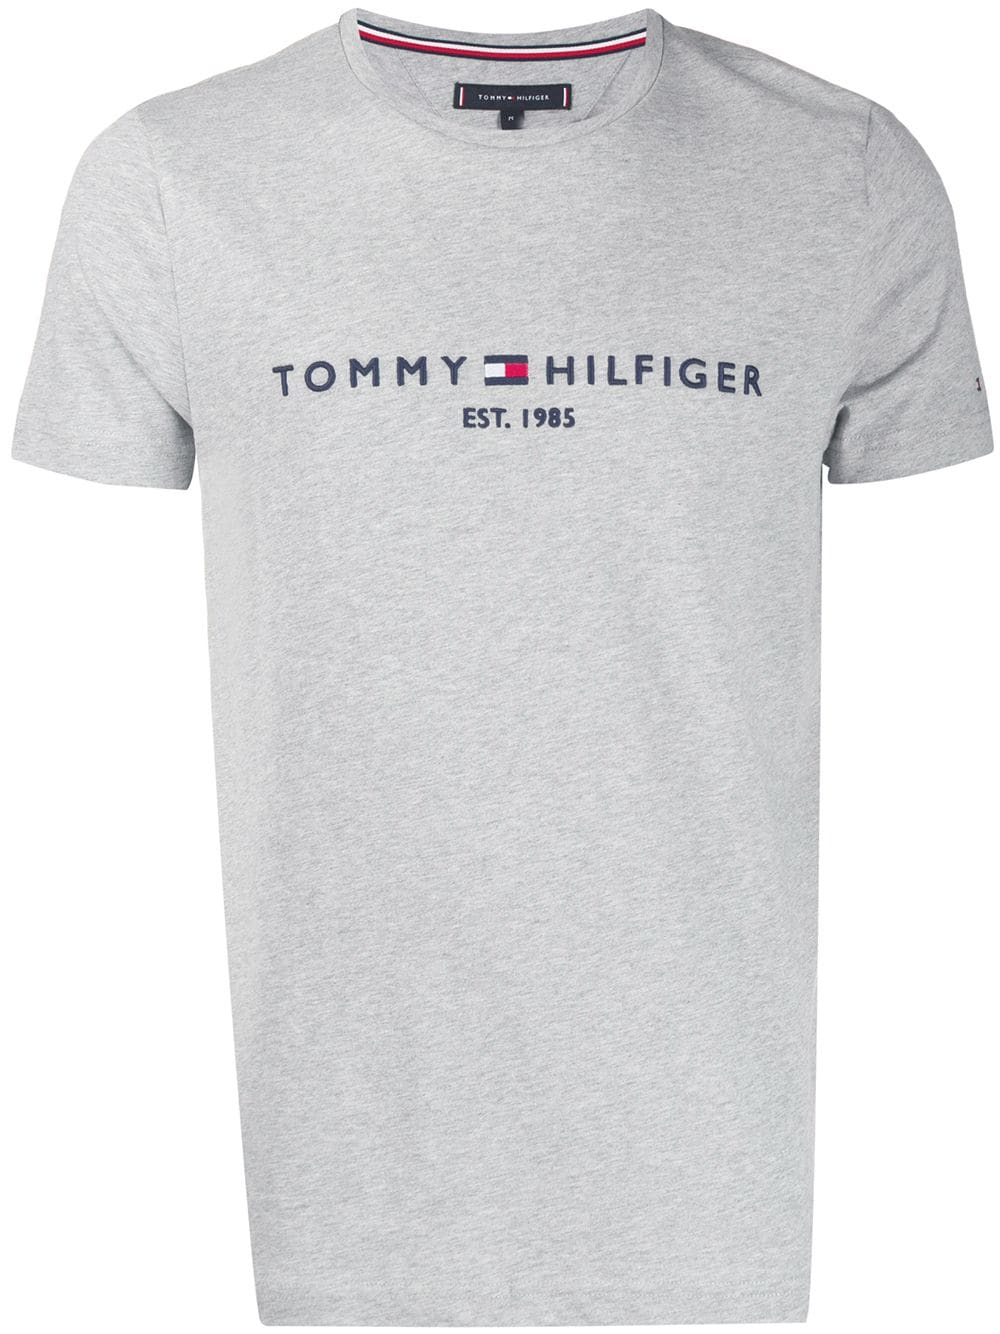 Tommy Hilfiger Tommy Hilfiger Logo Embroidered T Shirt Grey Tommyhilfiger Cloth In 2019 Tommy Hilfiger Shirts Tommy Hilfiger Hilfiger Denim